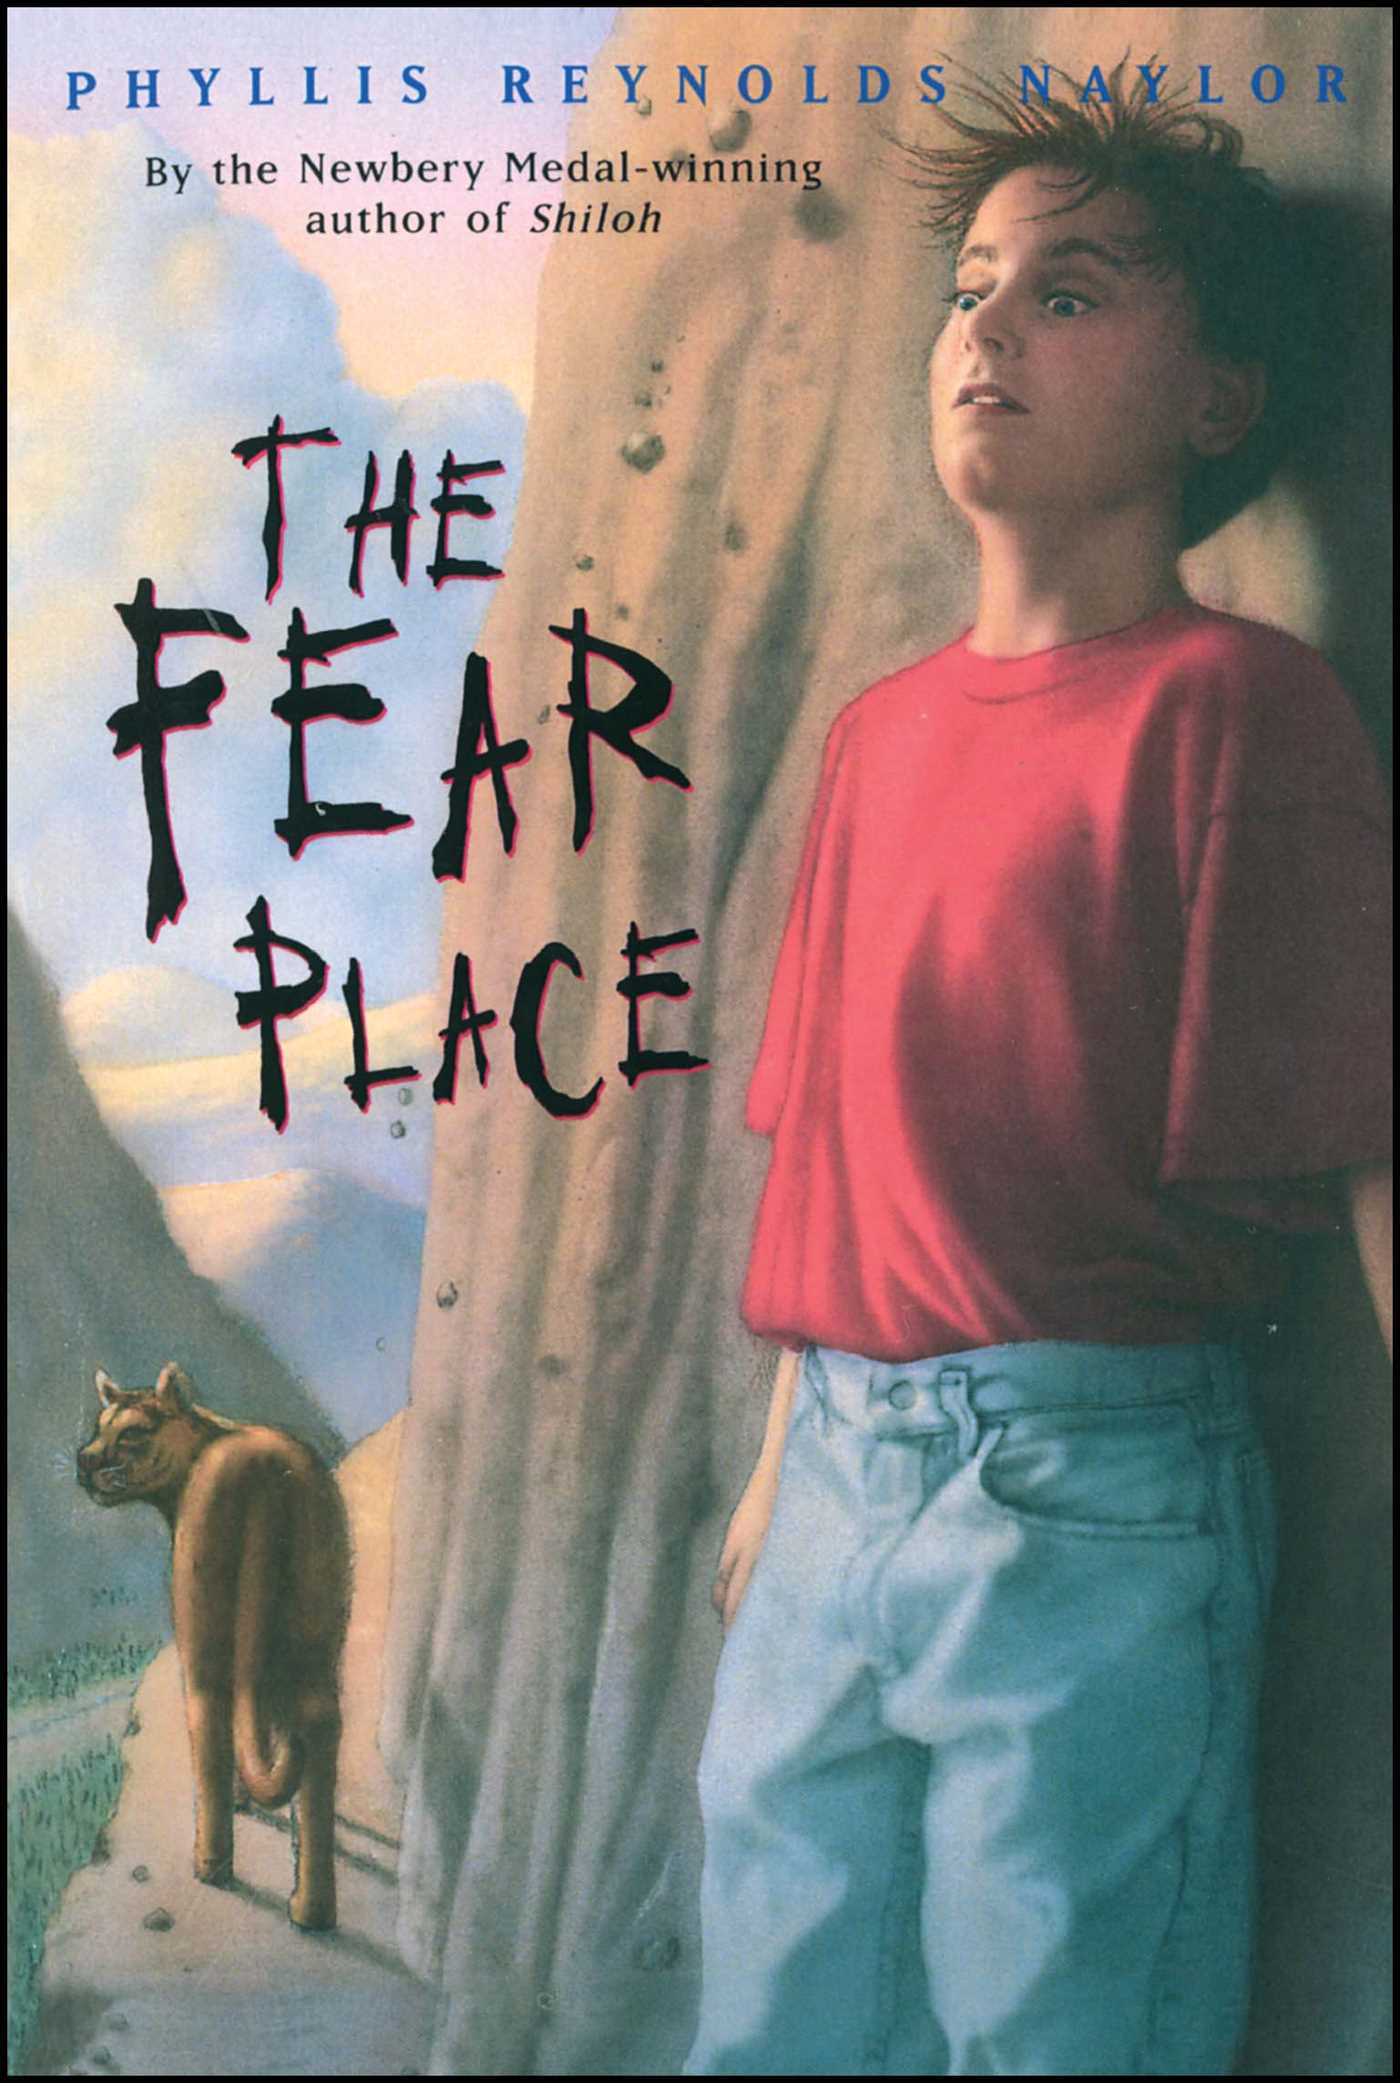 The fear place 9780689804427 hr